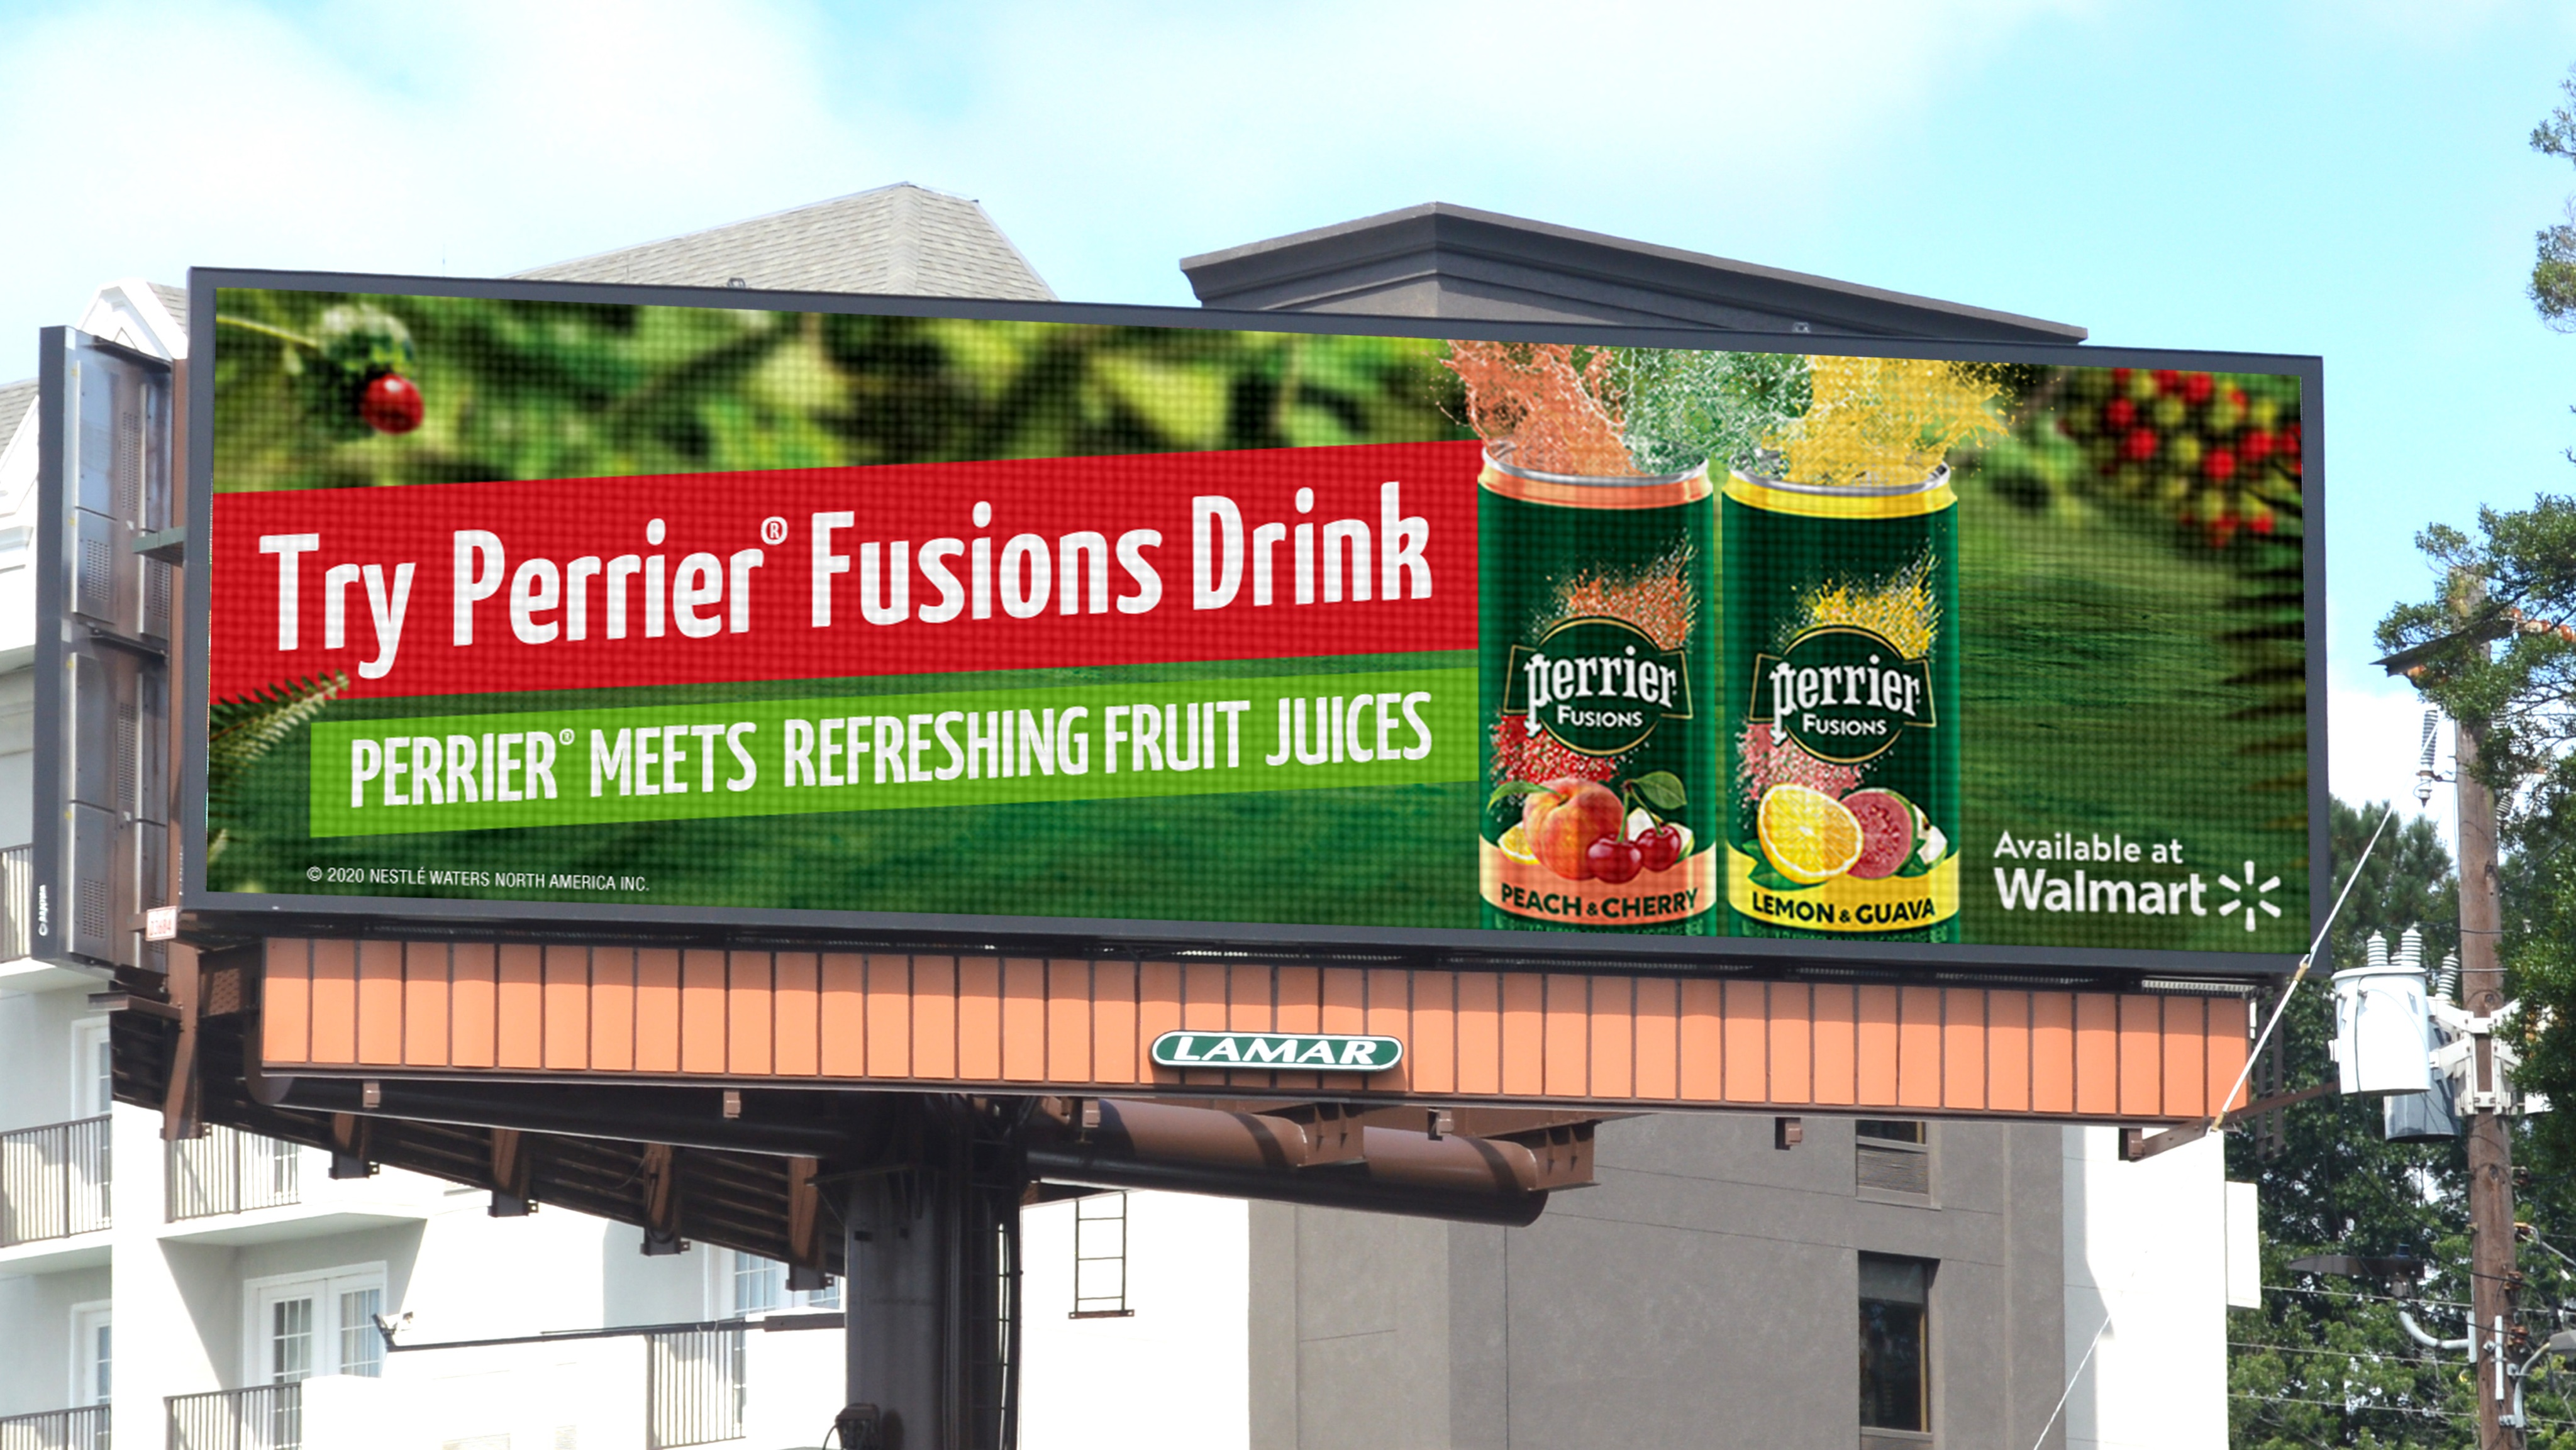 Lamar billboard with Nestlé Perrier Fusions advertisement